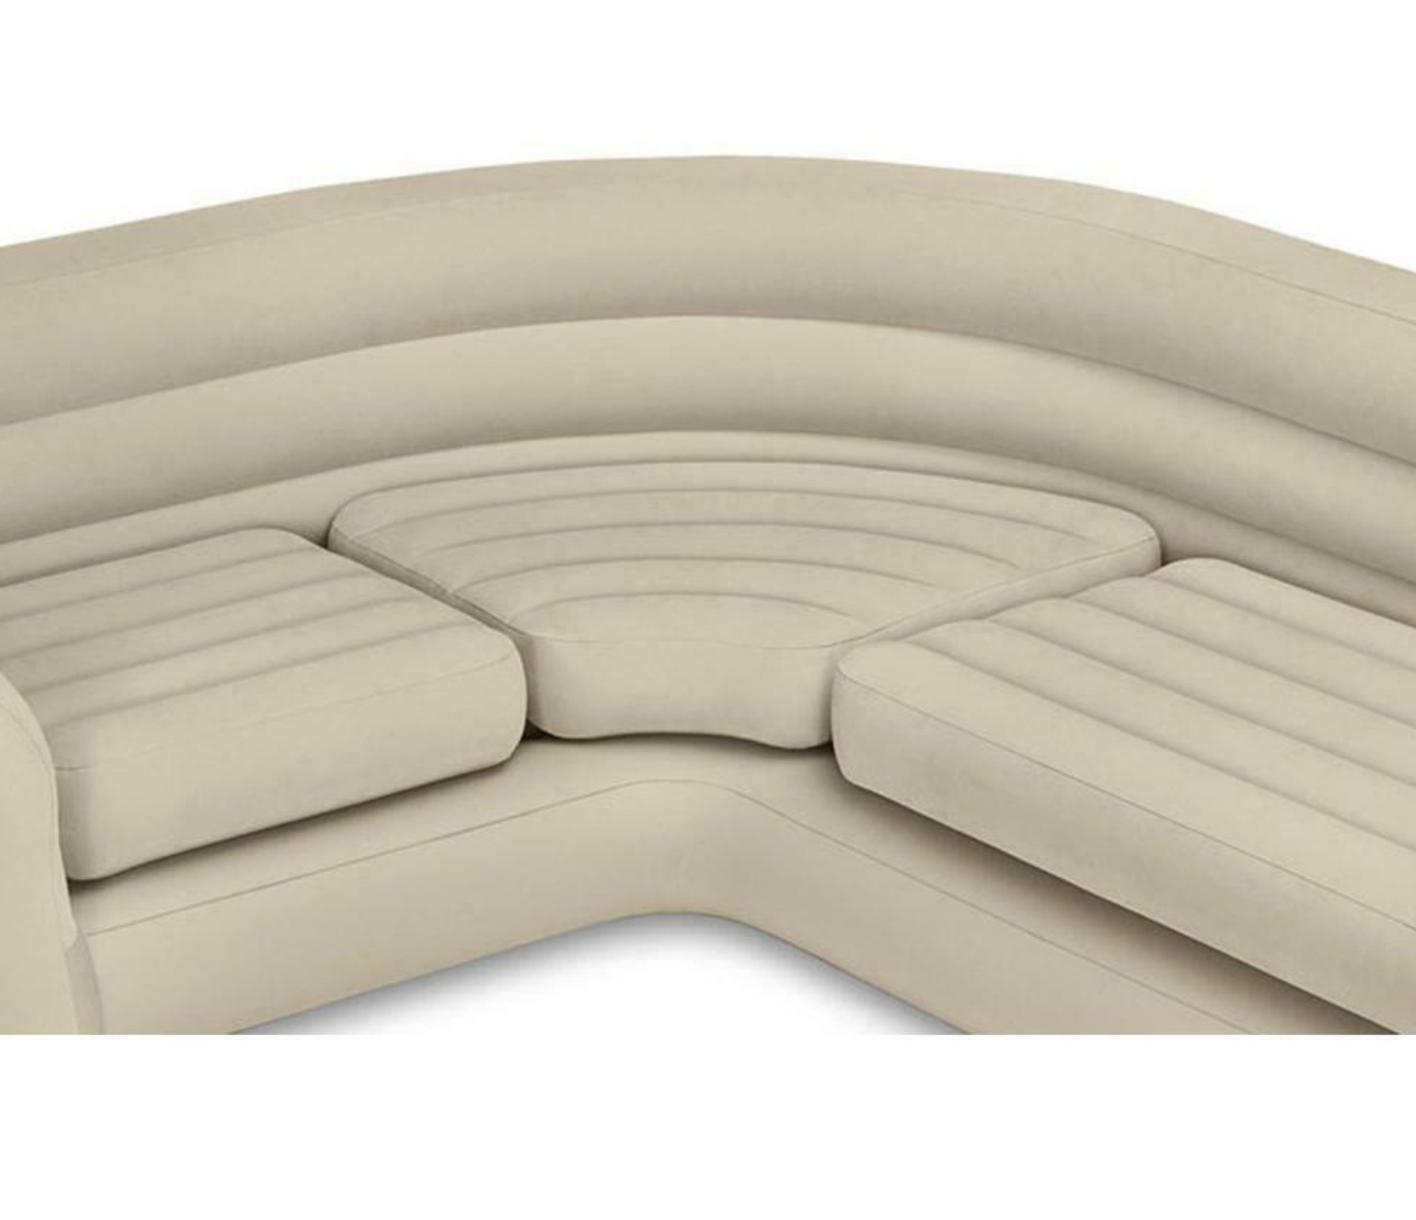 Inflatable Bed Couch Sofa Sectional Room